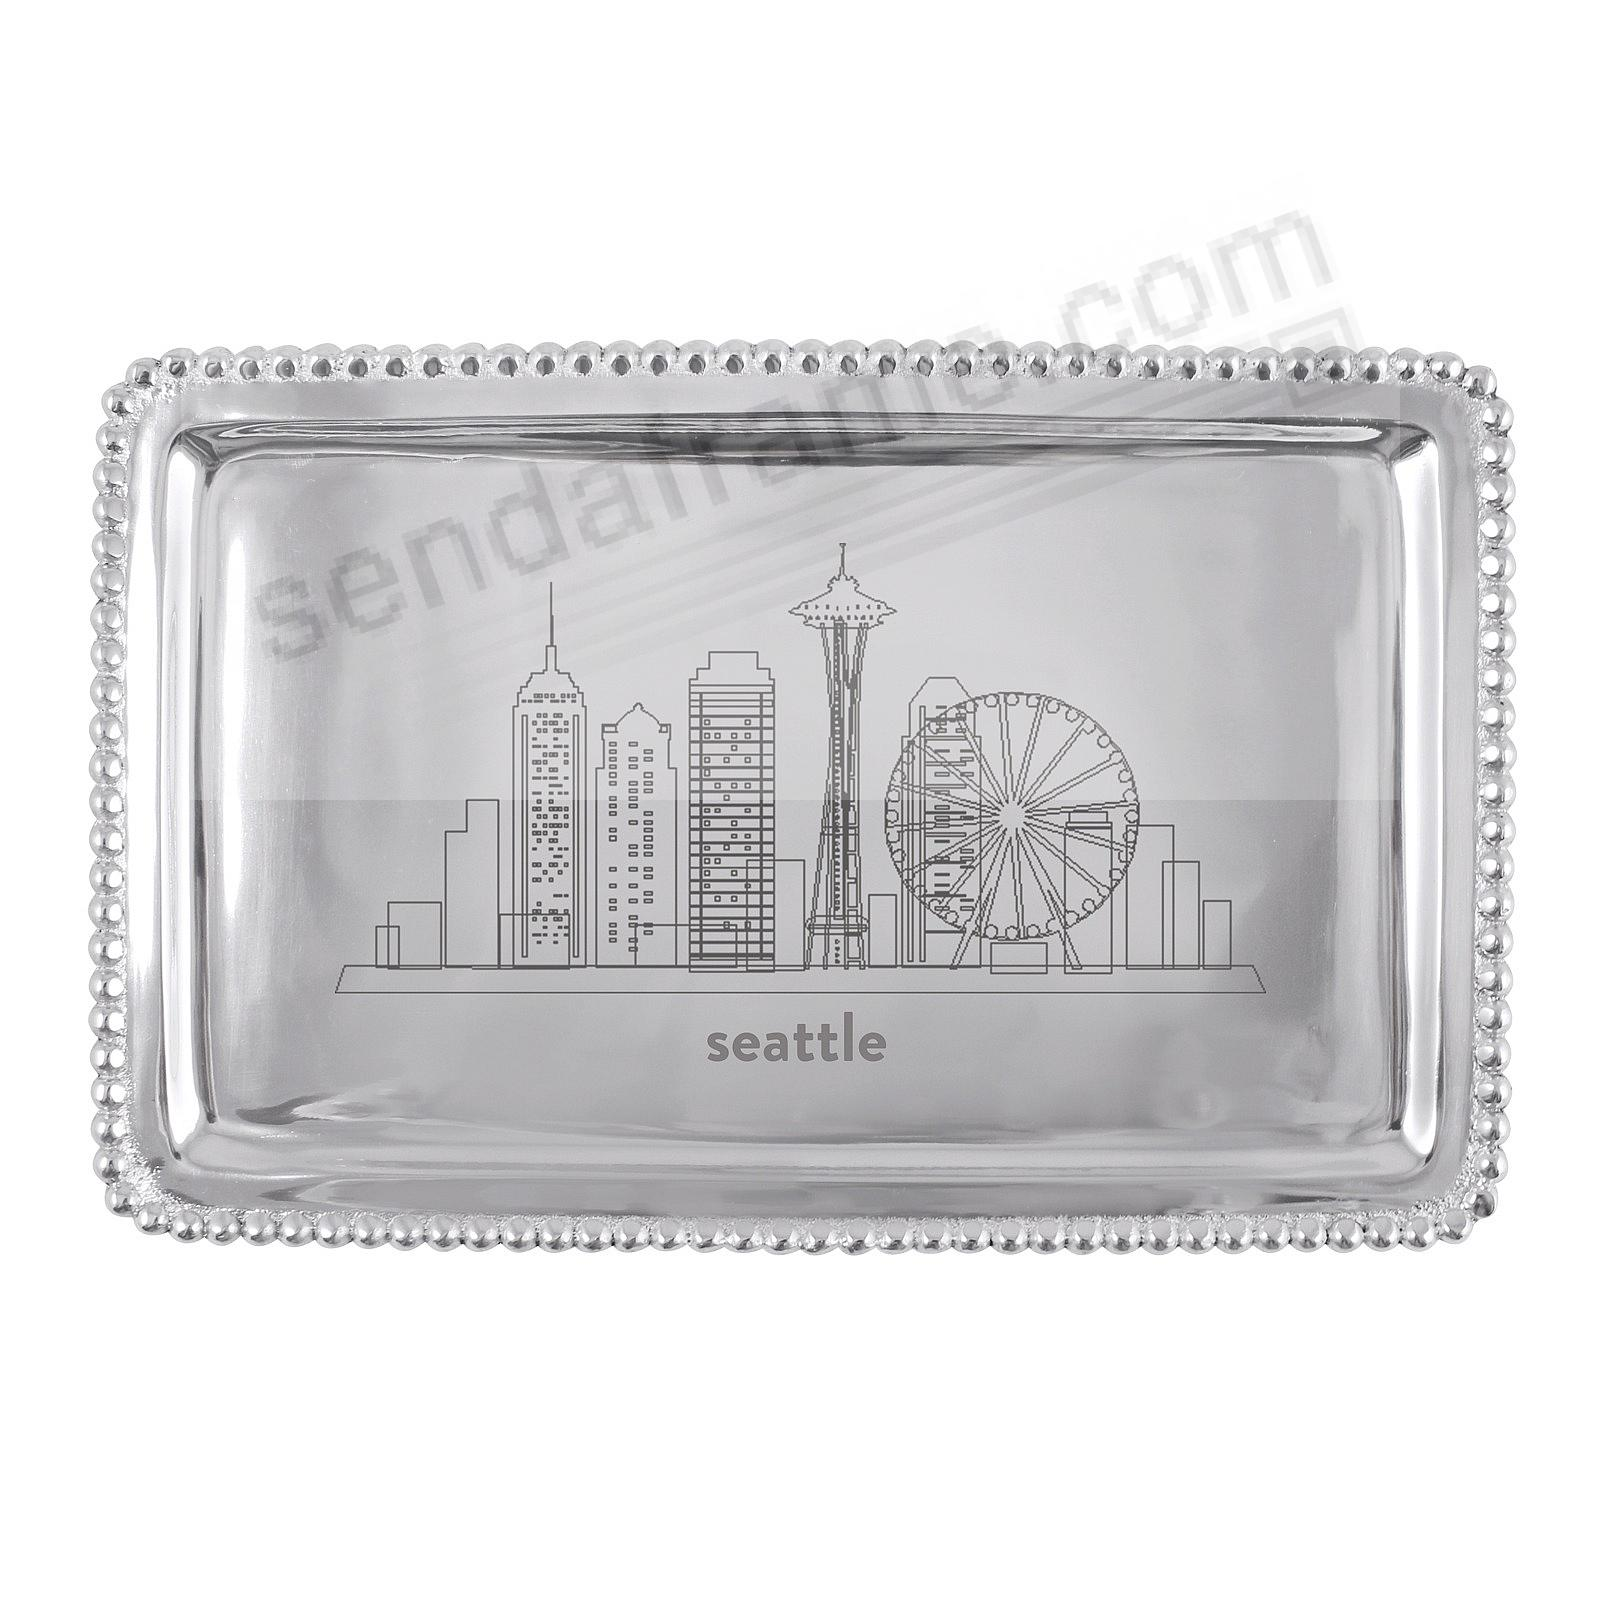 The SEATTLE-WA CITYSCAPE BEADED BUFFET TRAY crafted by Mariposa®